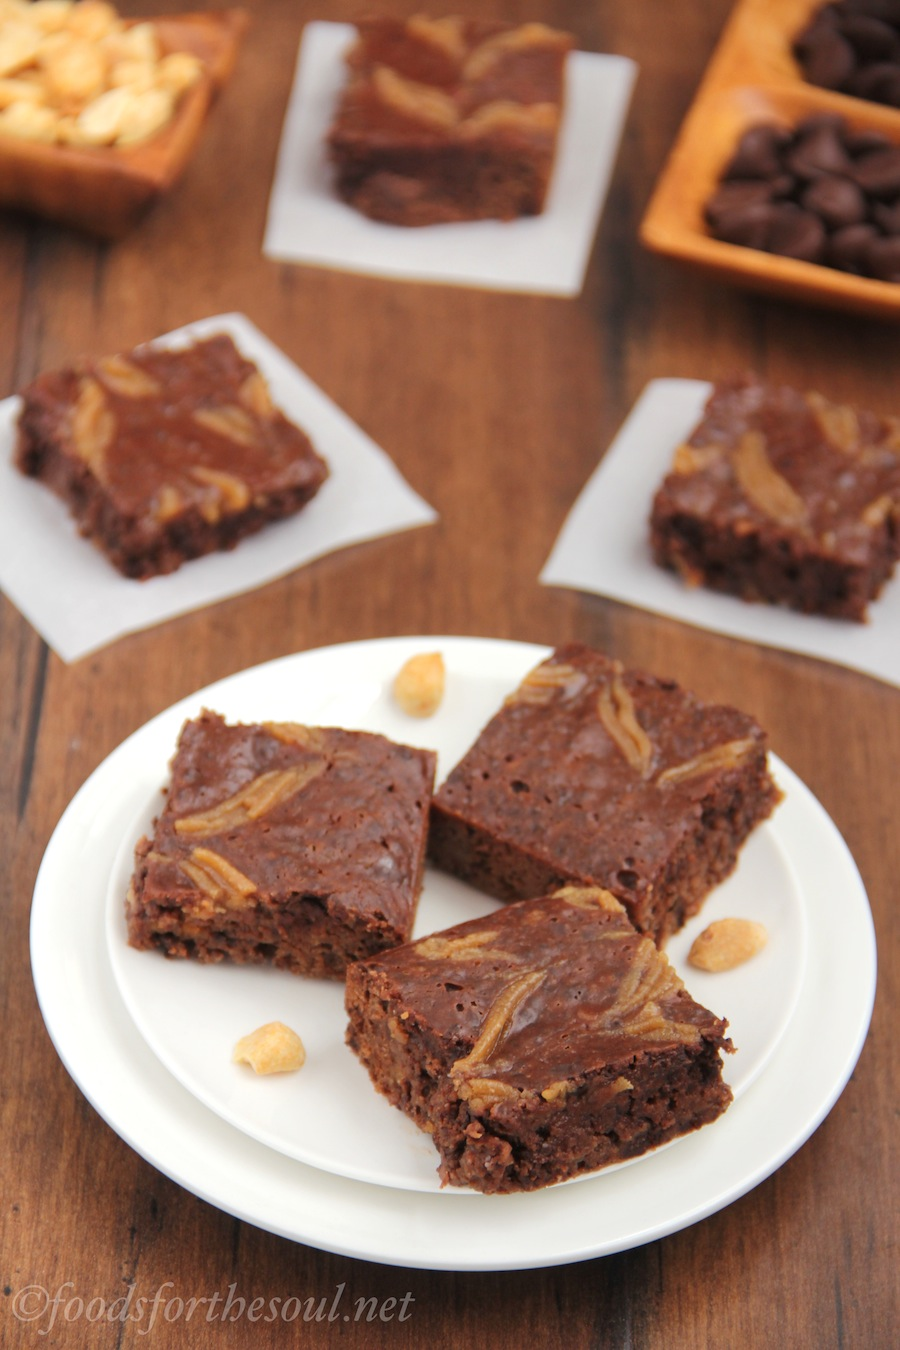 Fudgy Double Peanut Butter Brownies! They have Reese's PB Cups inside & swirls of PB on top. Rich, moist and decadent -- you'd never believe they're actually skinny!